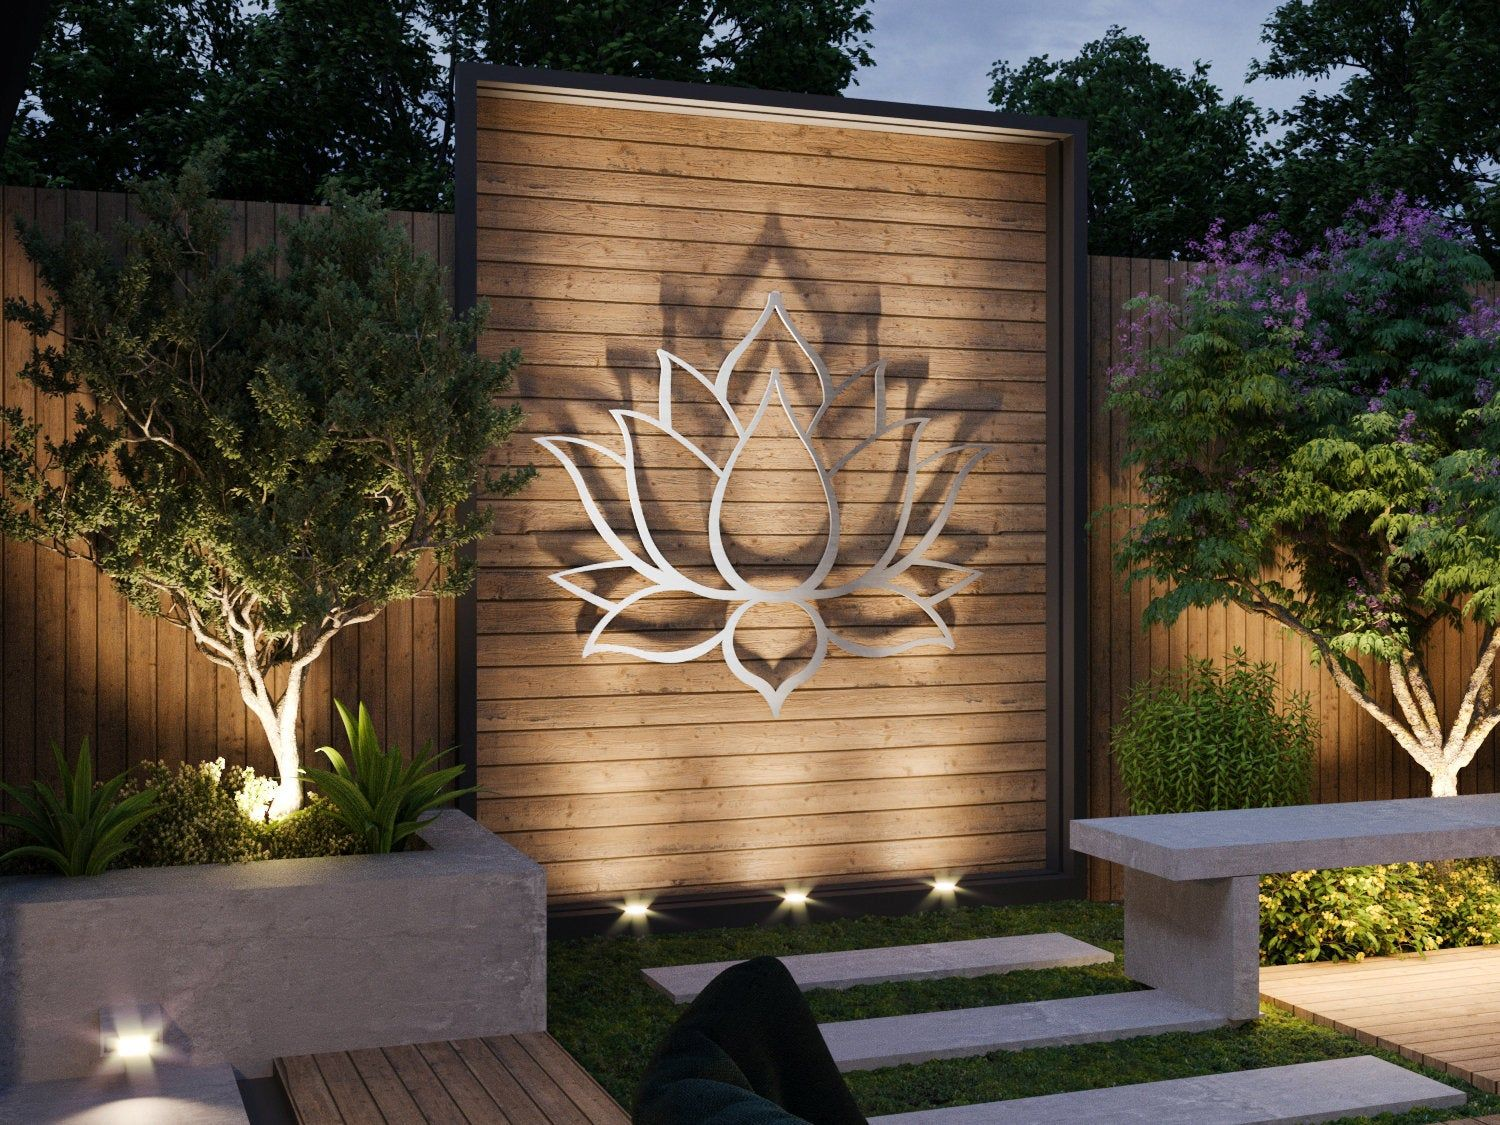 Lotus Flower Large Outdoor Metal Wall Art Garden Sculpture Etsy Modern Outdoor Wall Art Garden Wall Designs Outdoor Metal Wall Art